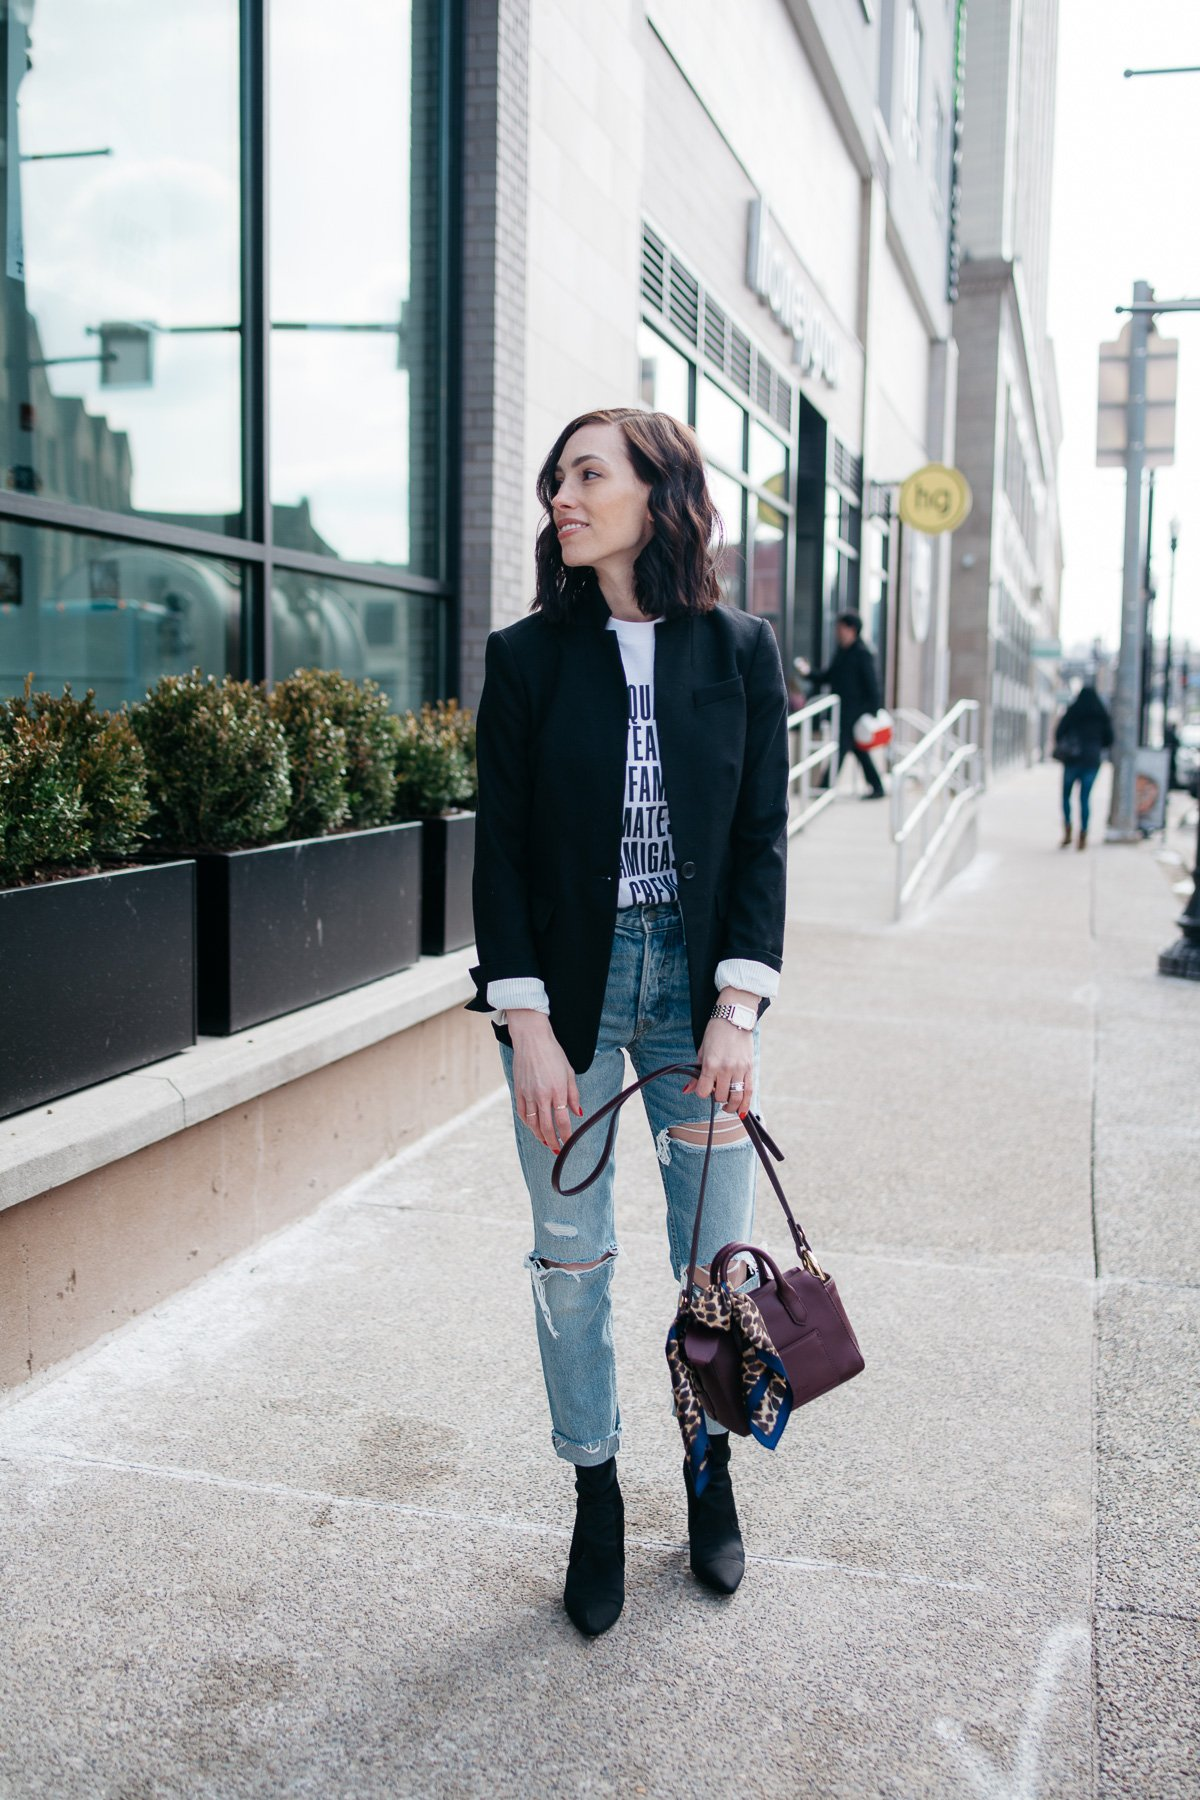 Top US fashion blogger, Wellesley & King, styles a graphic tshirt three ways: girl in tshirt, jcrew blazer, and distressed jeans